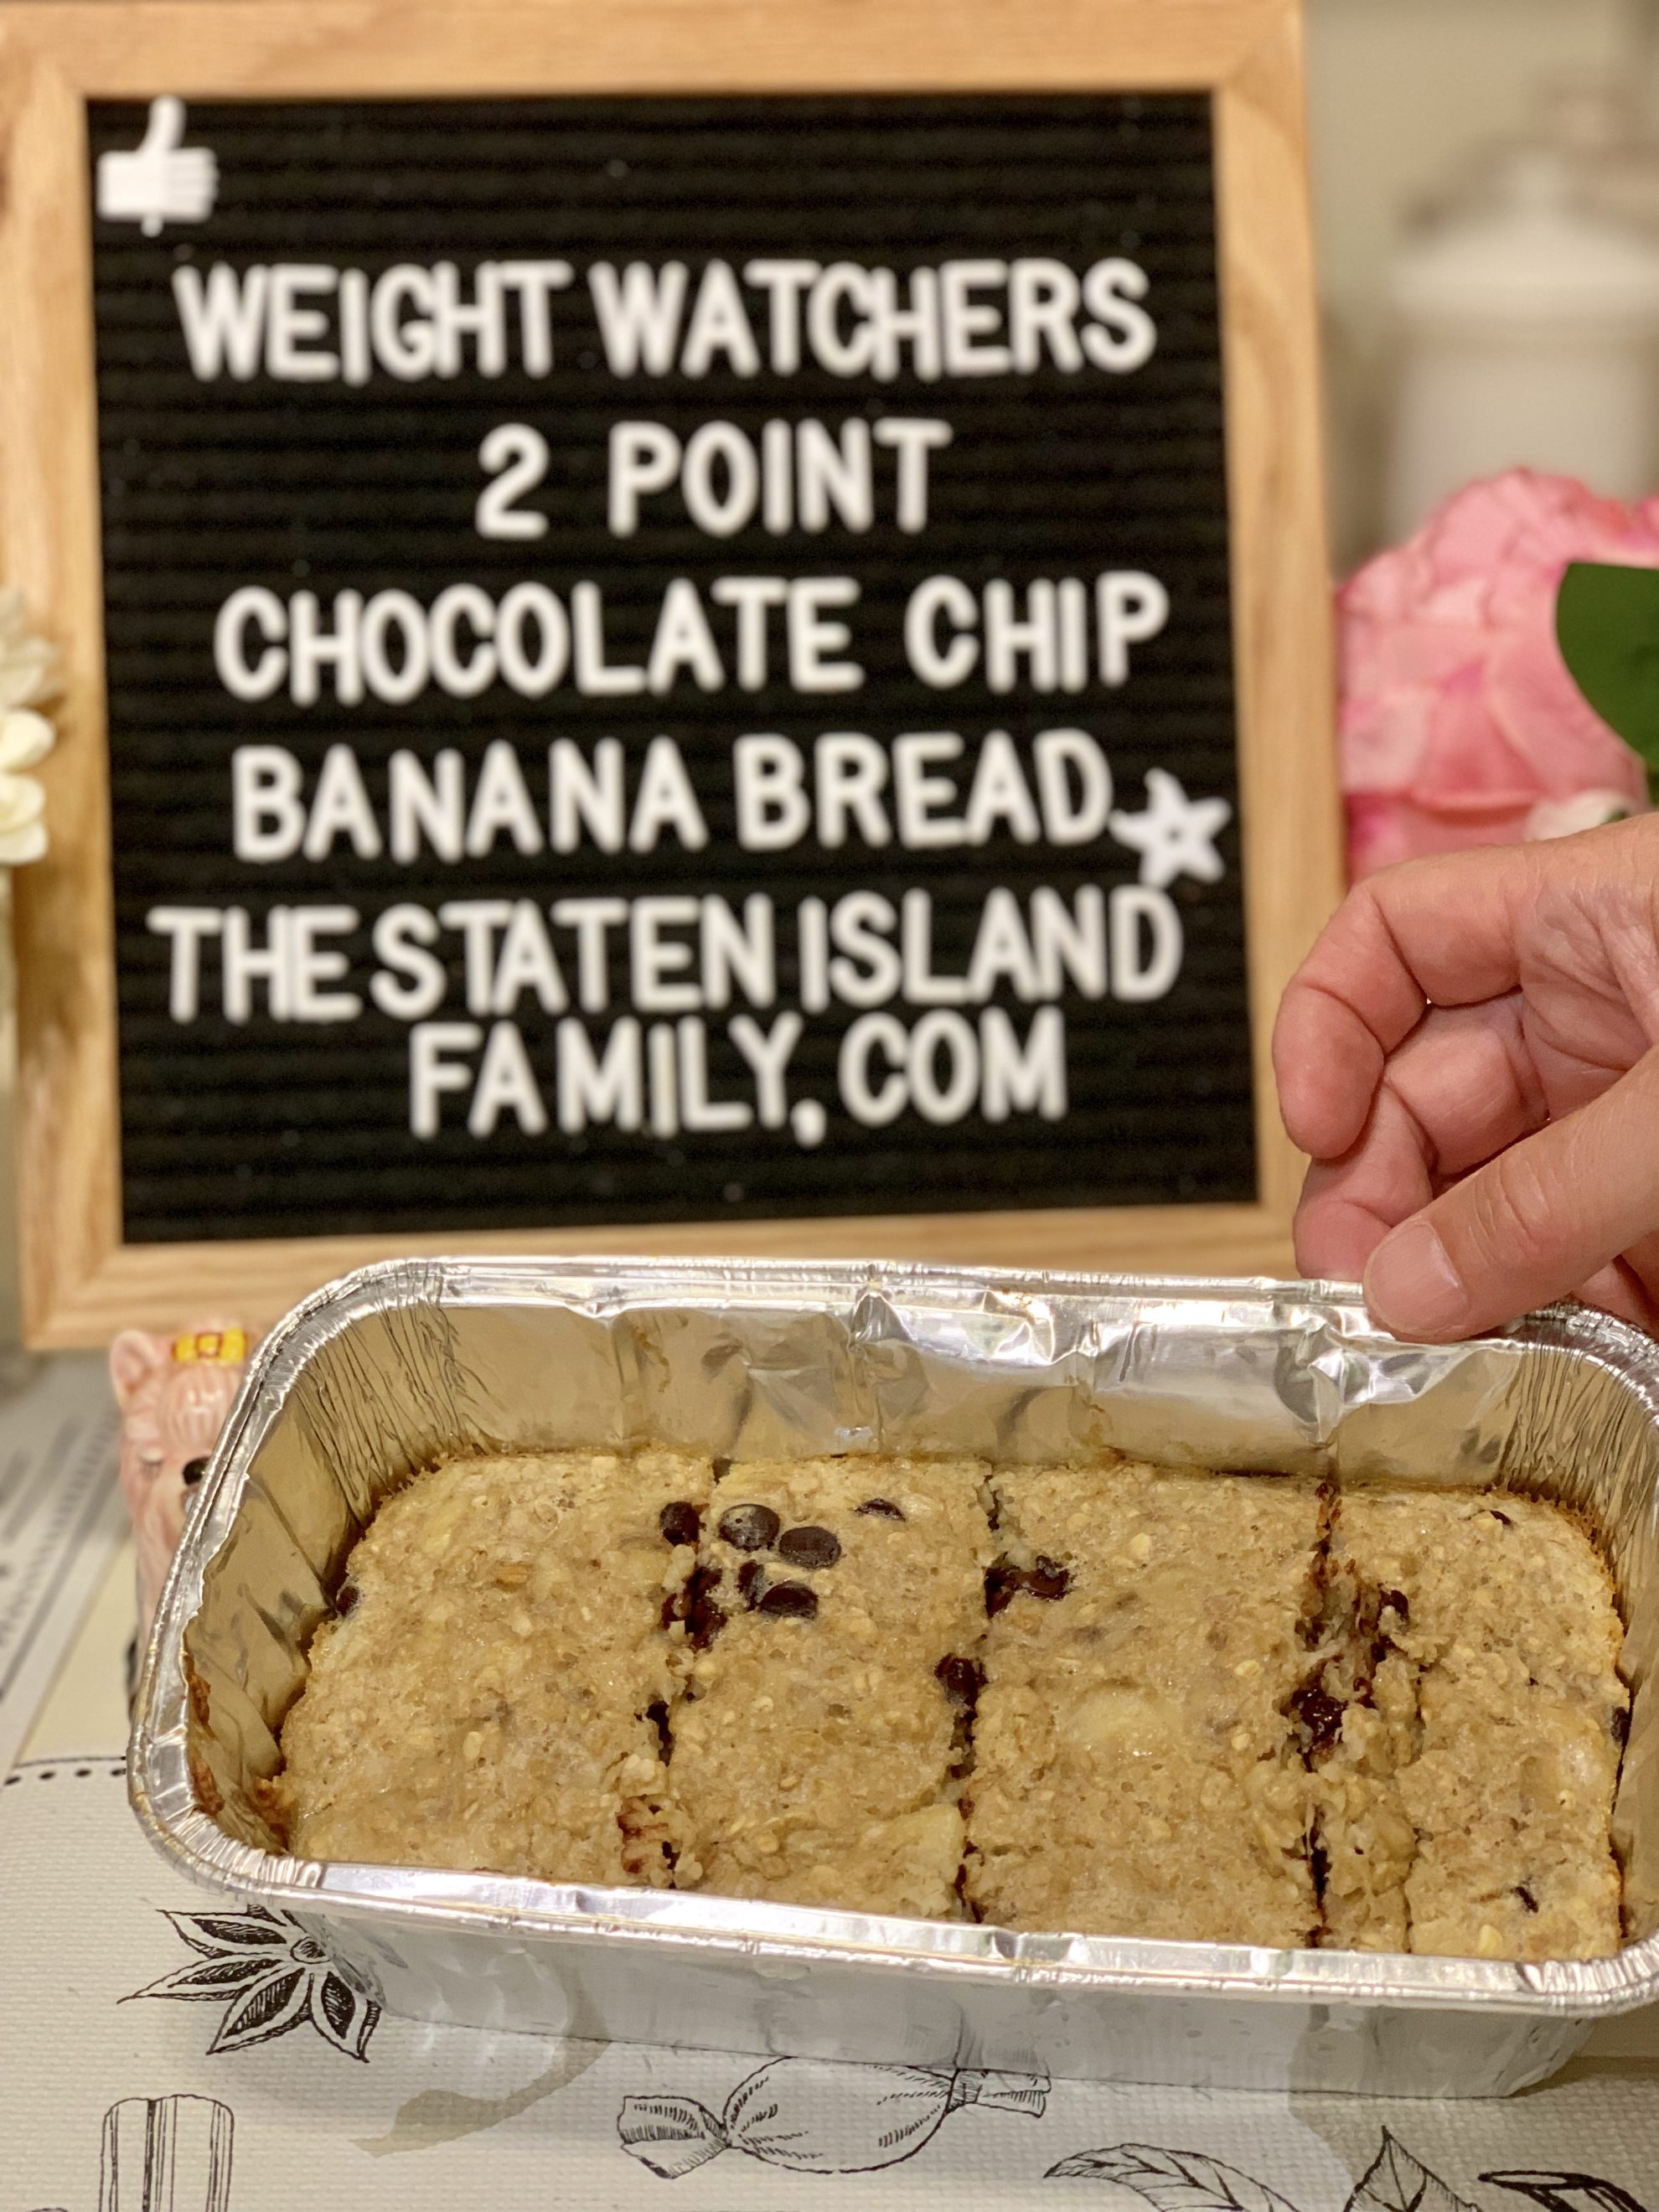 Weight Watchers chocolate chip banana bread